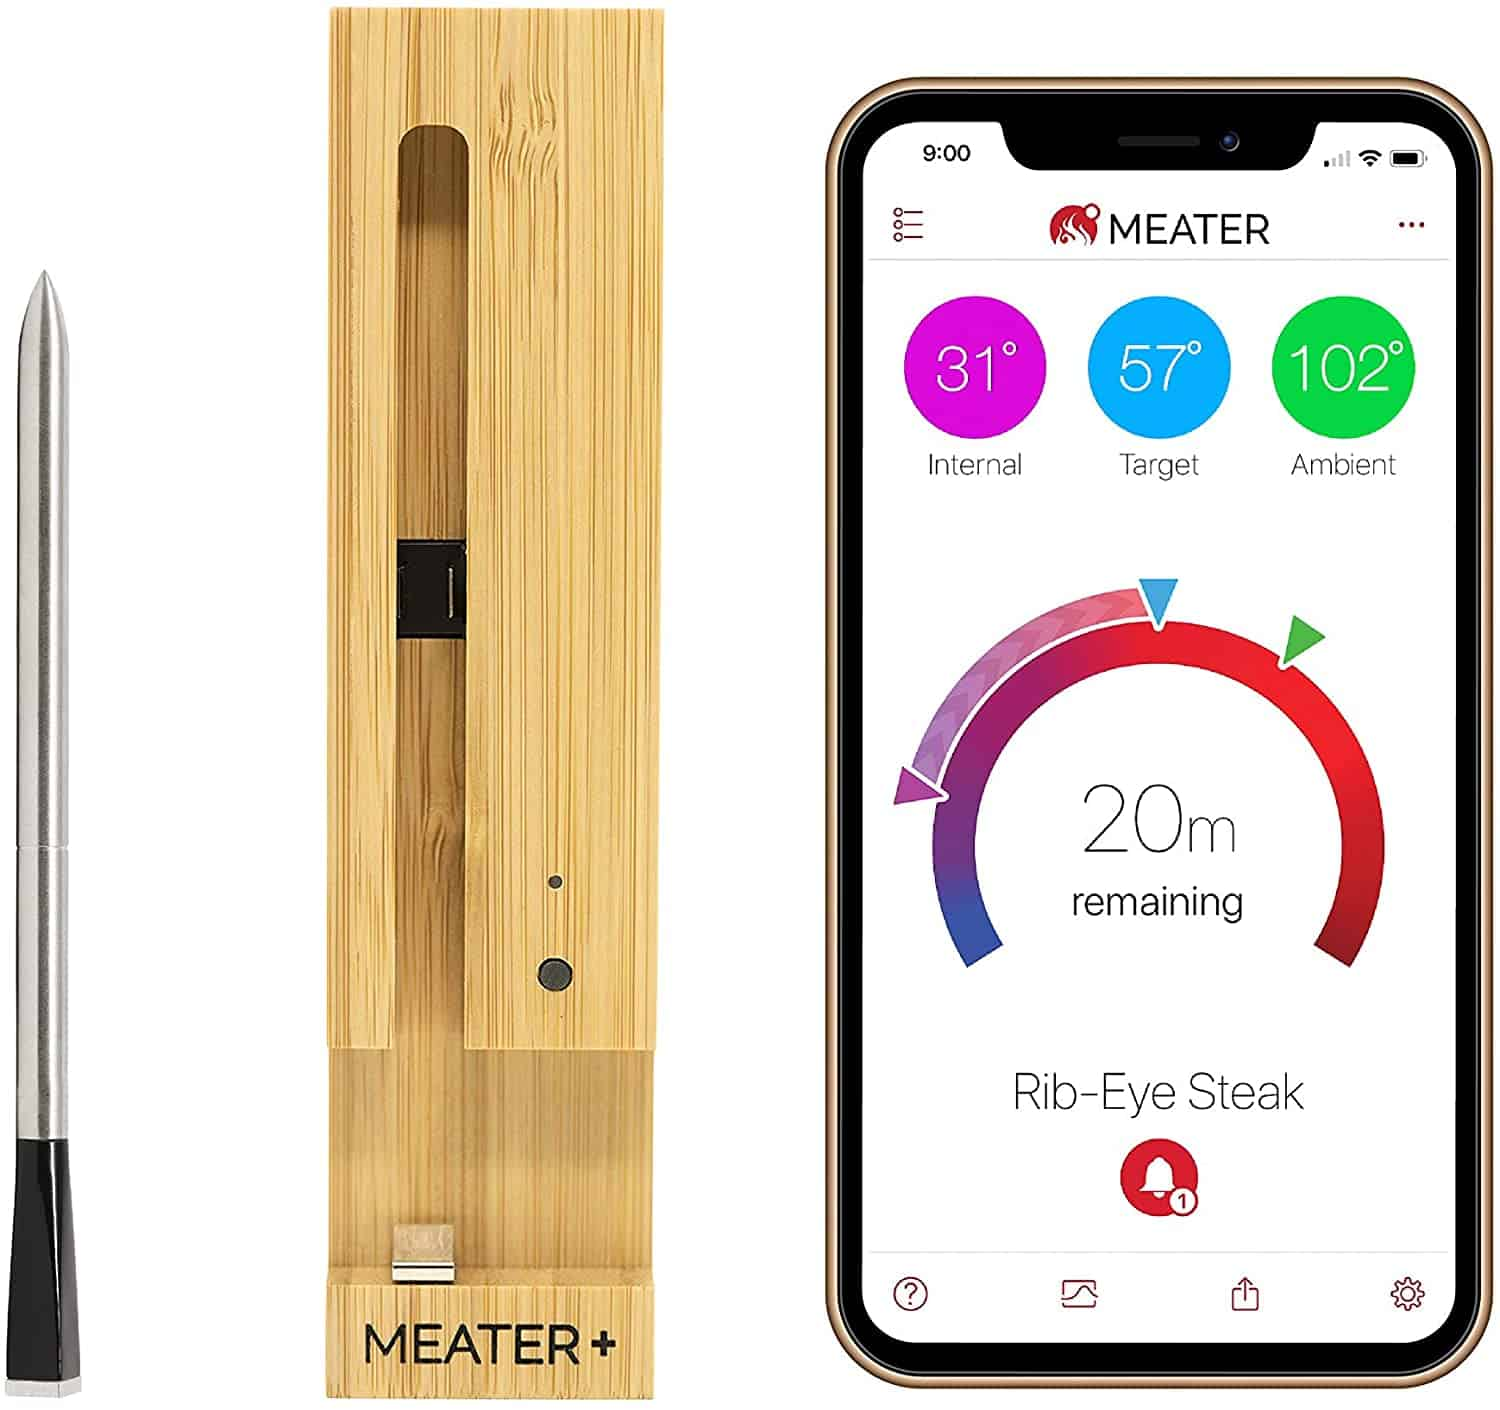 Best innovative Bluetooth BBQ thermometer- The Meater+